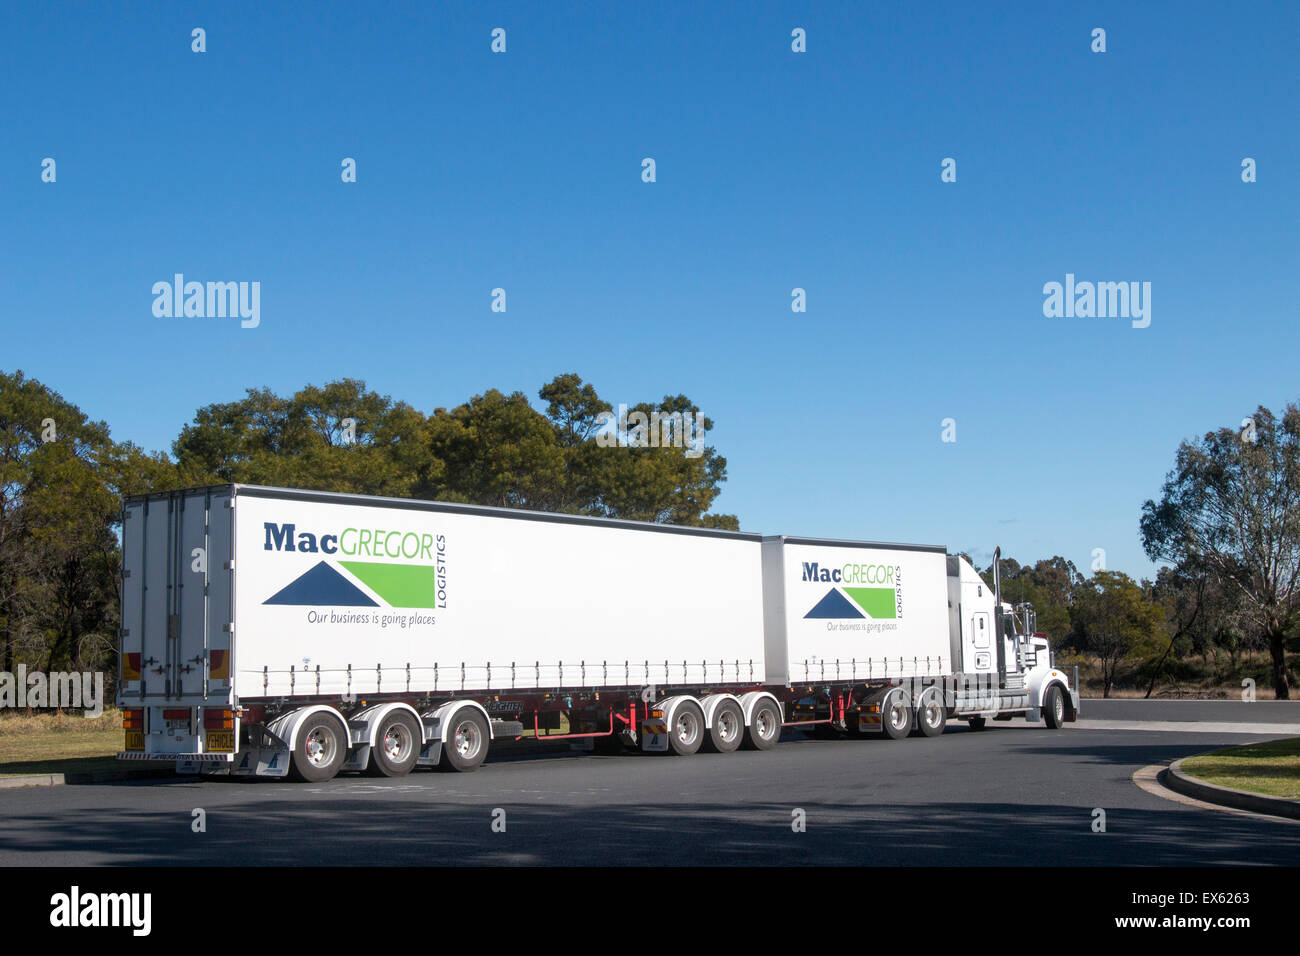 Australian heavy goods vehicle truck at Pheasants nest service station on the motorway in new south wales,australia Stock Photo